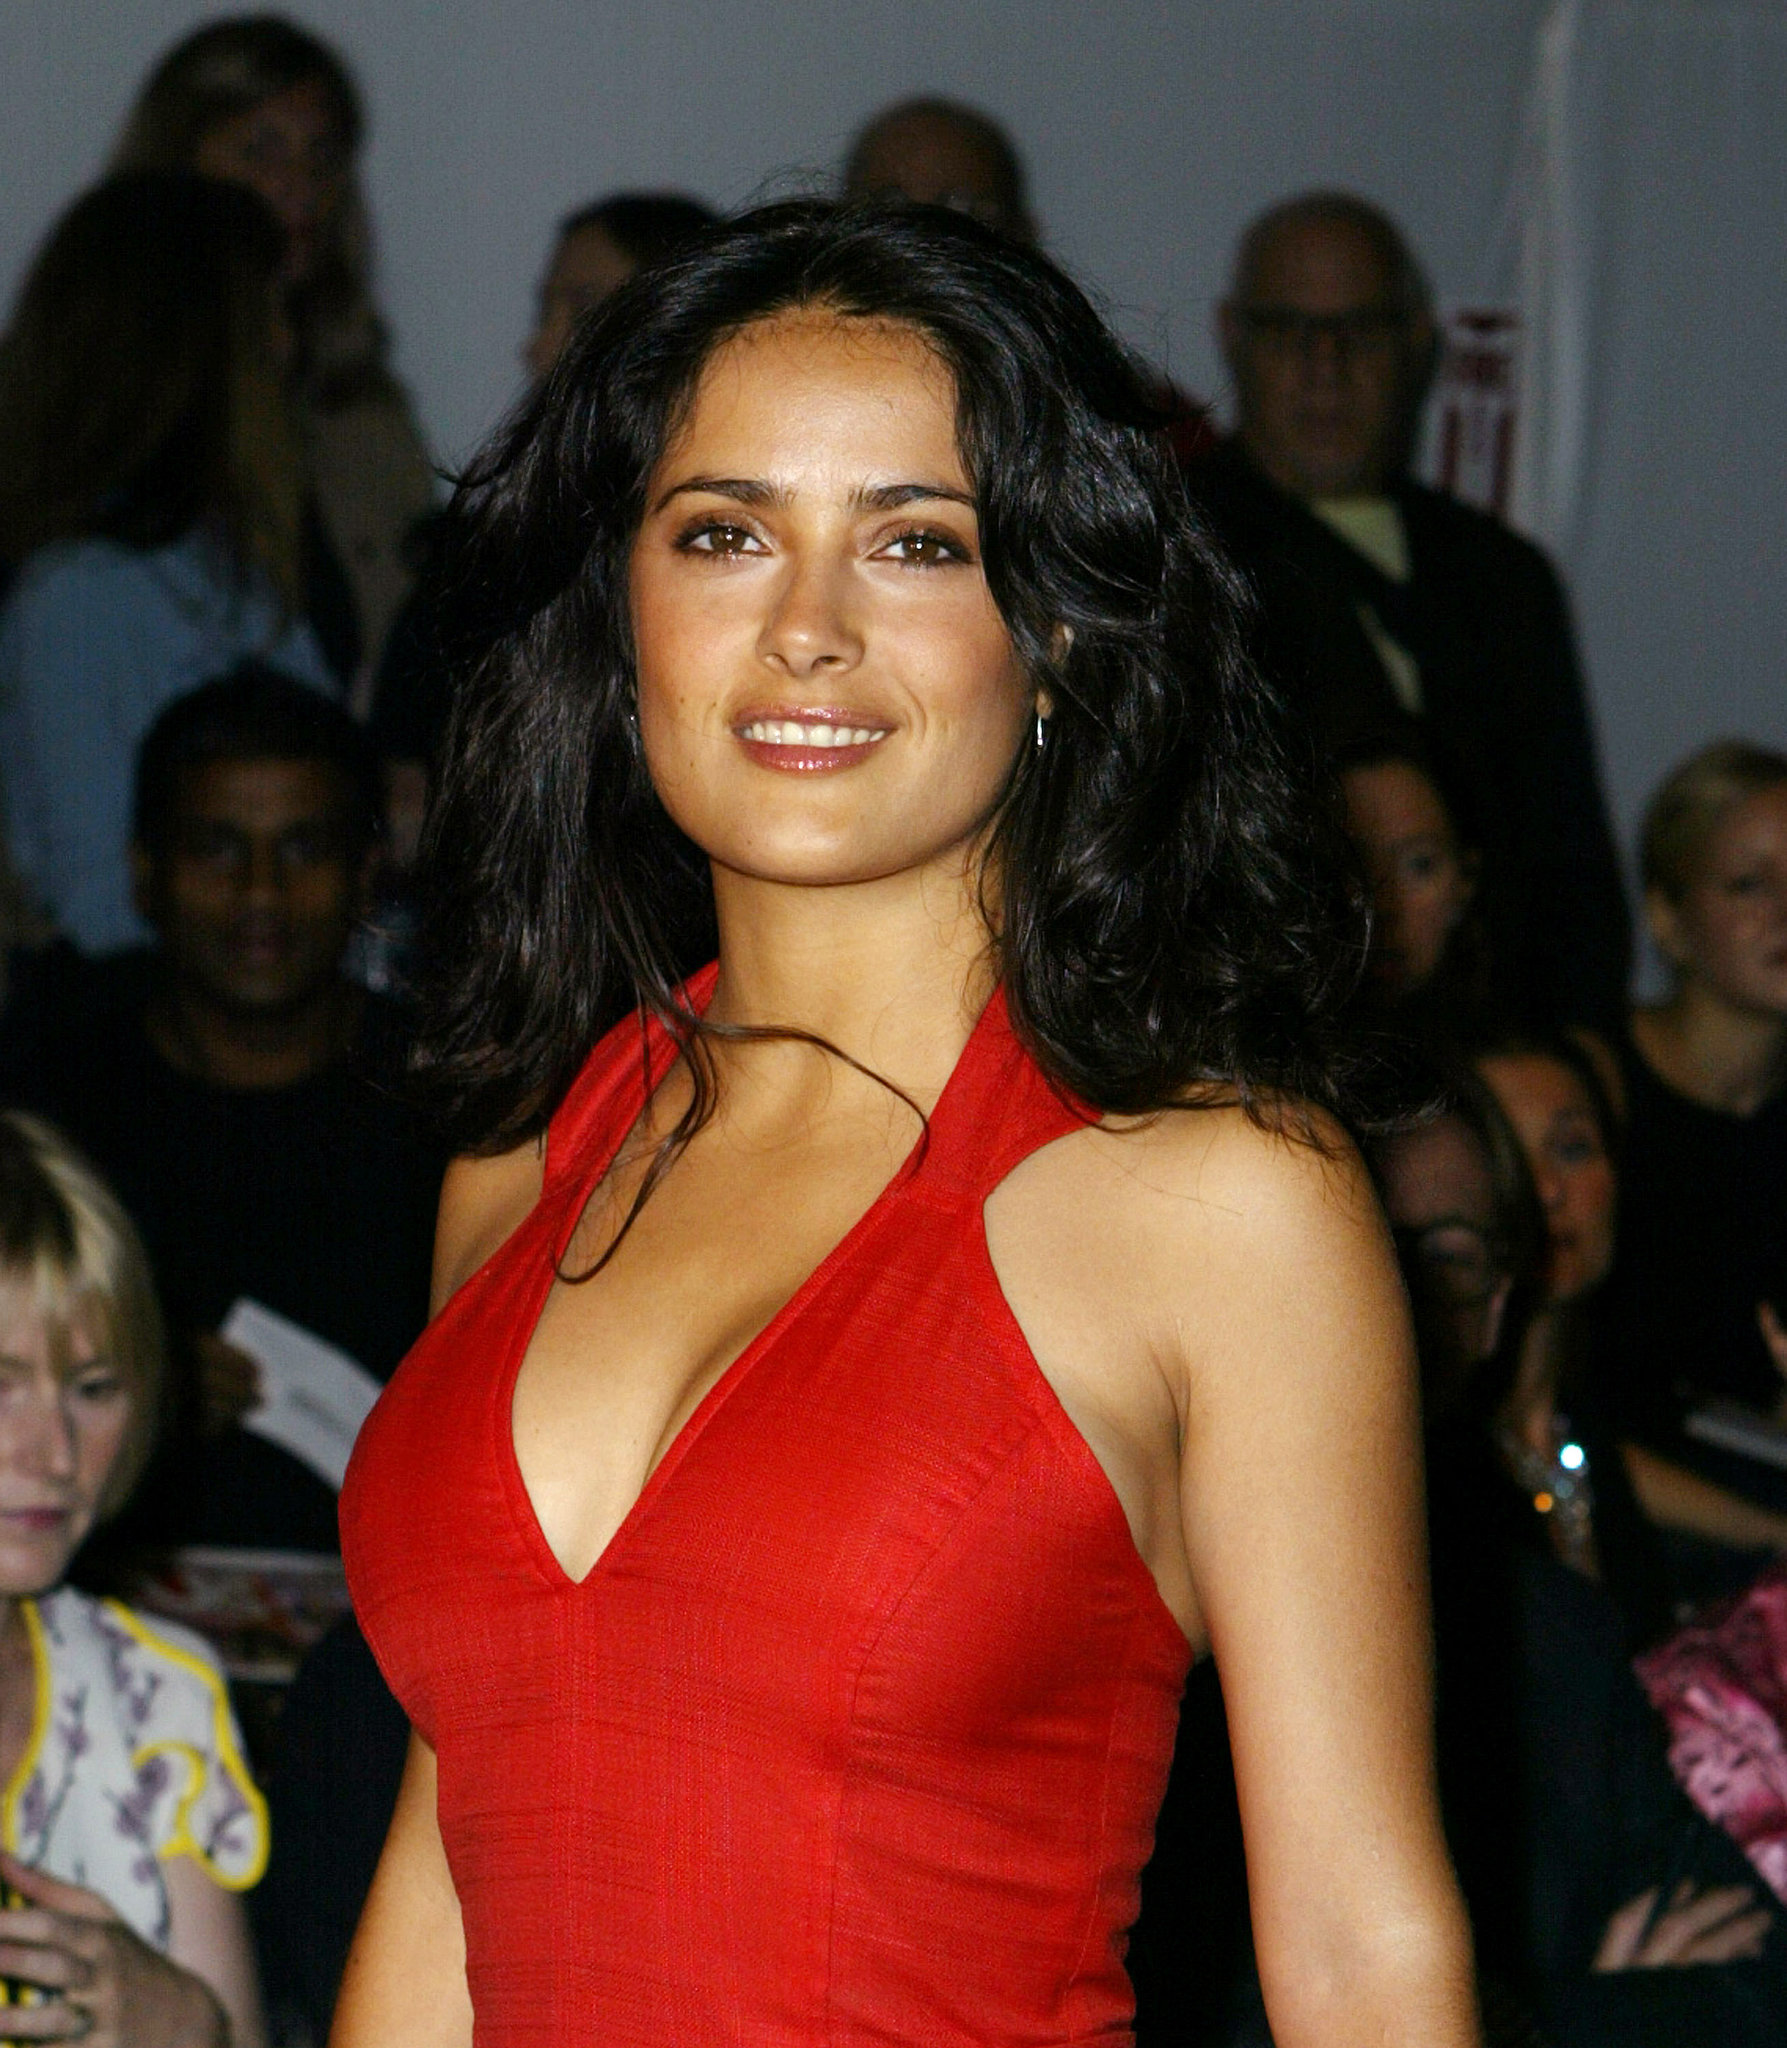 Salma Hayek wore a sexy red dress to Carolina Herrera's September 2003 show.